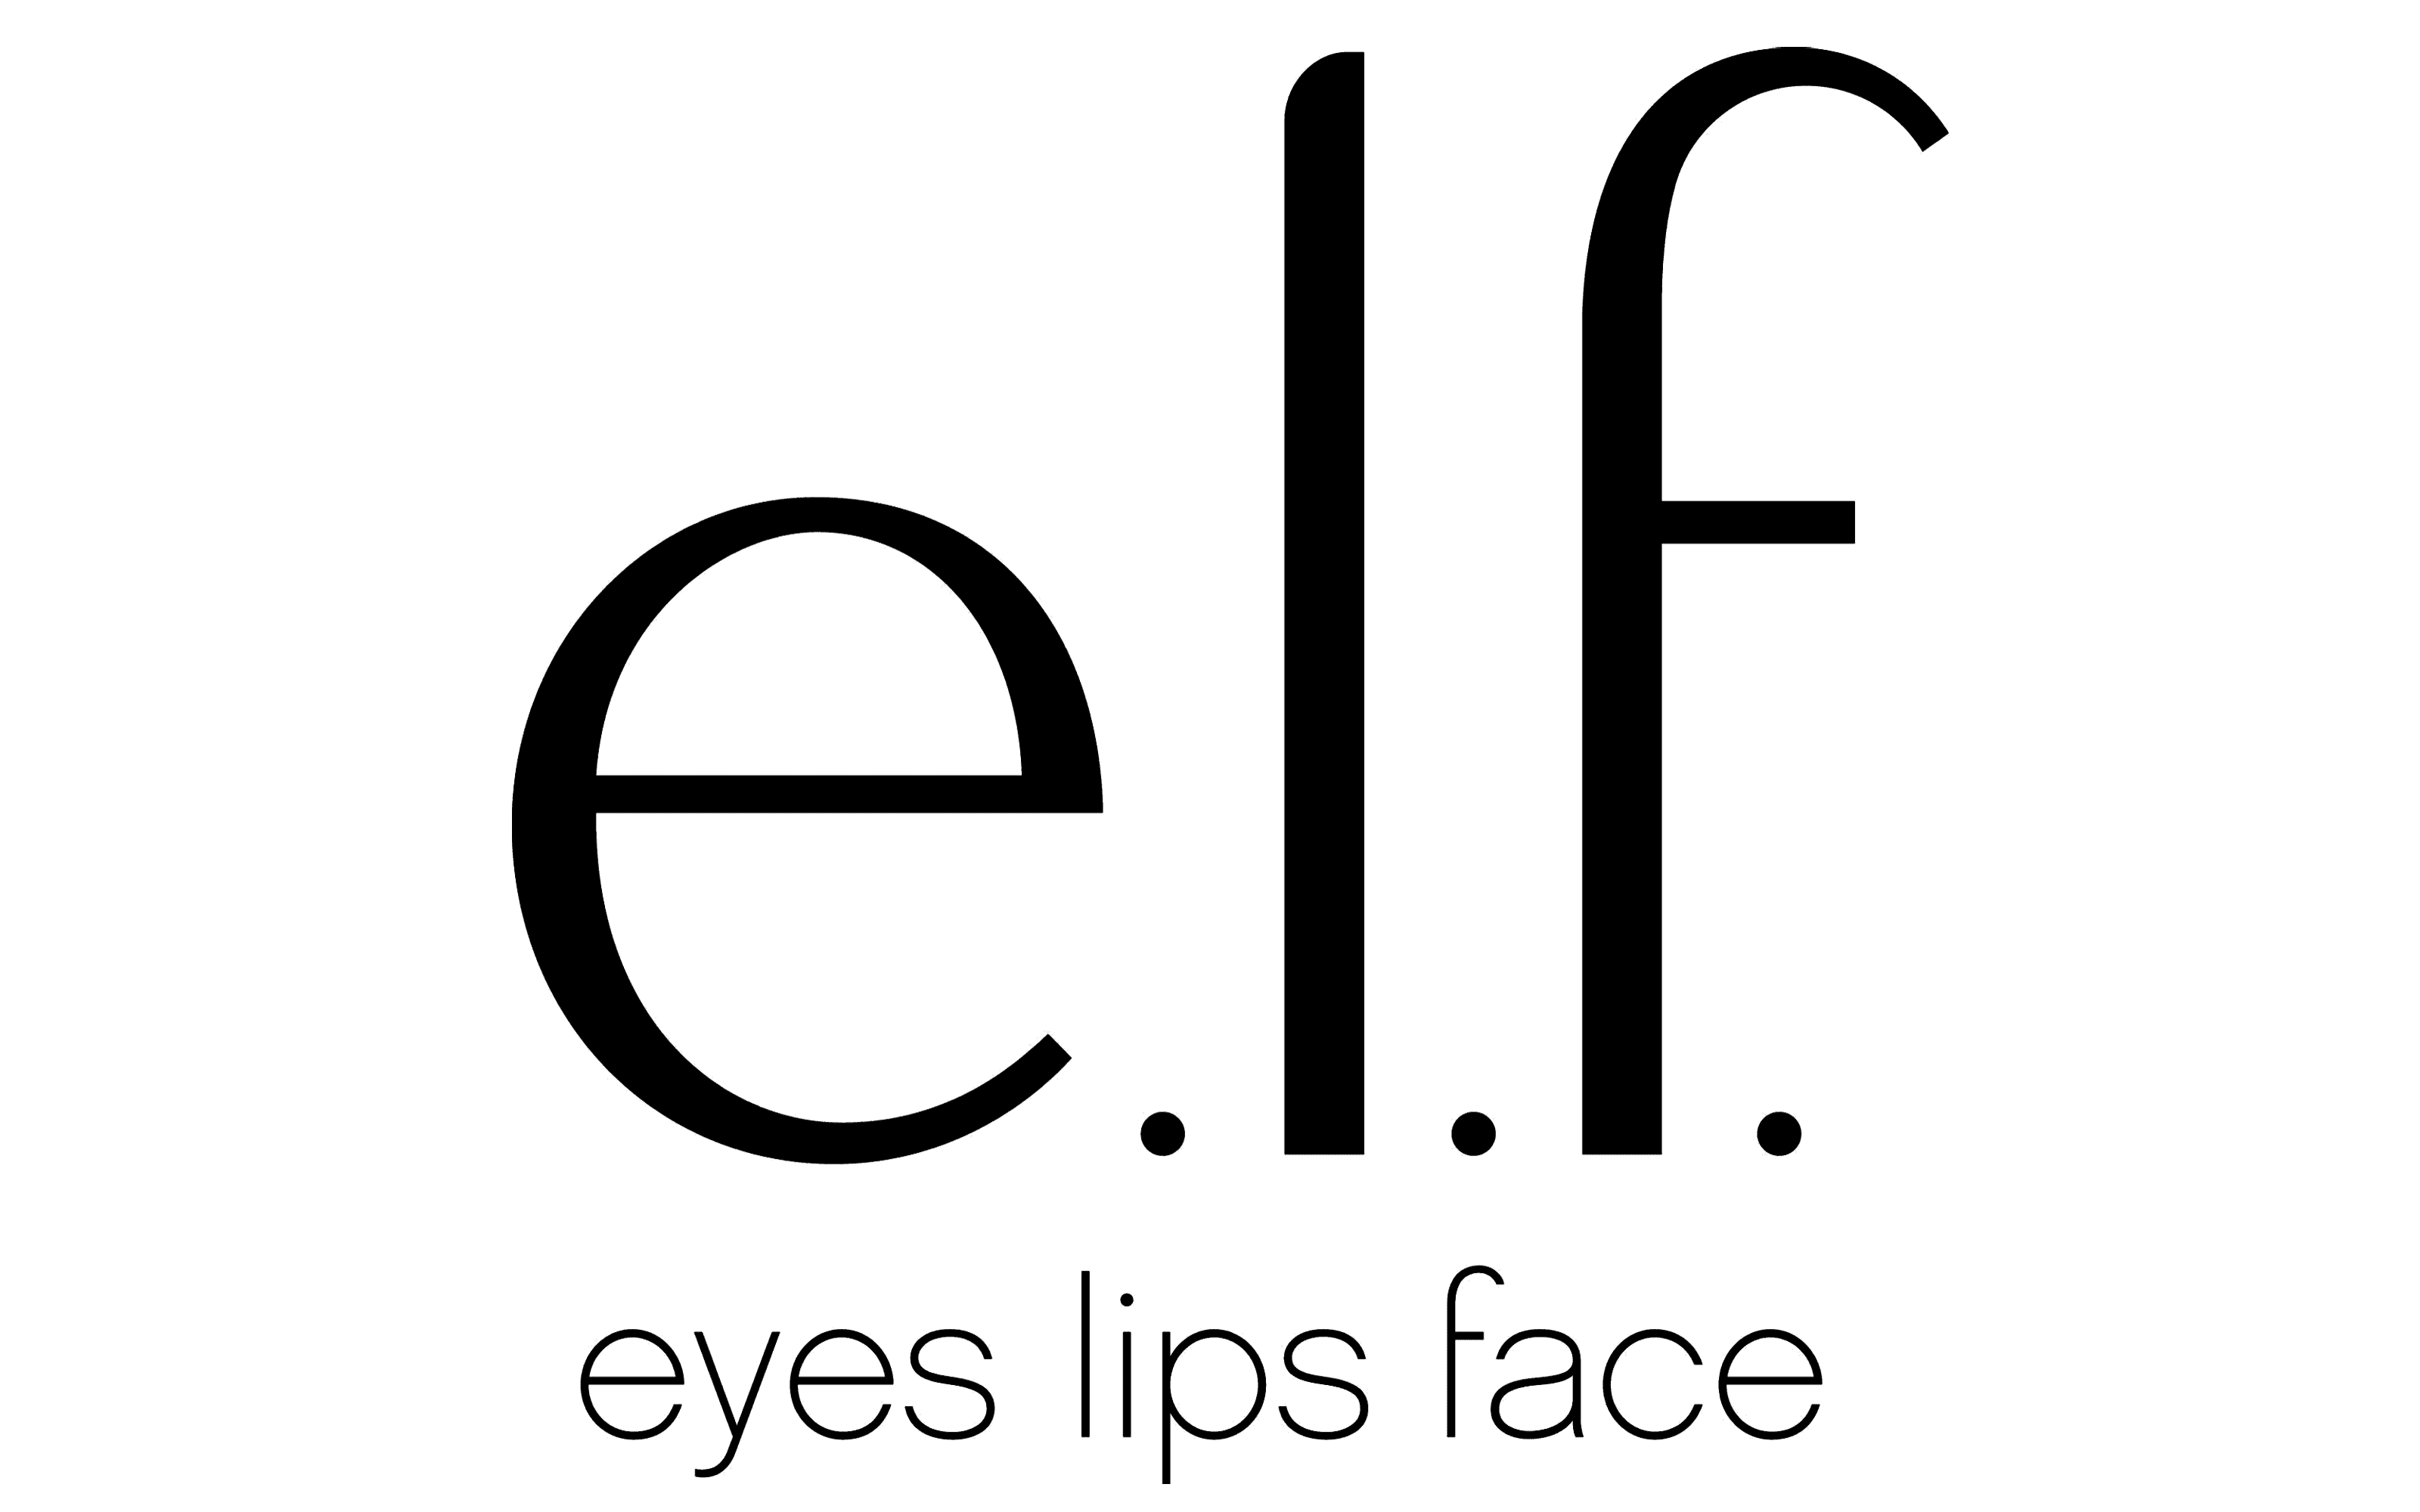 E.l.f. logo and symbol, meaning, history, PNG